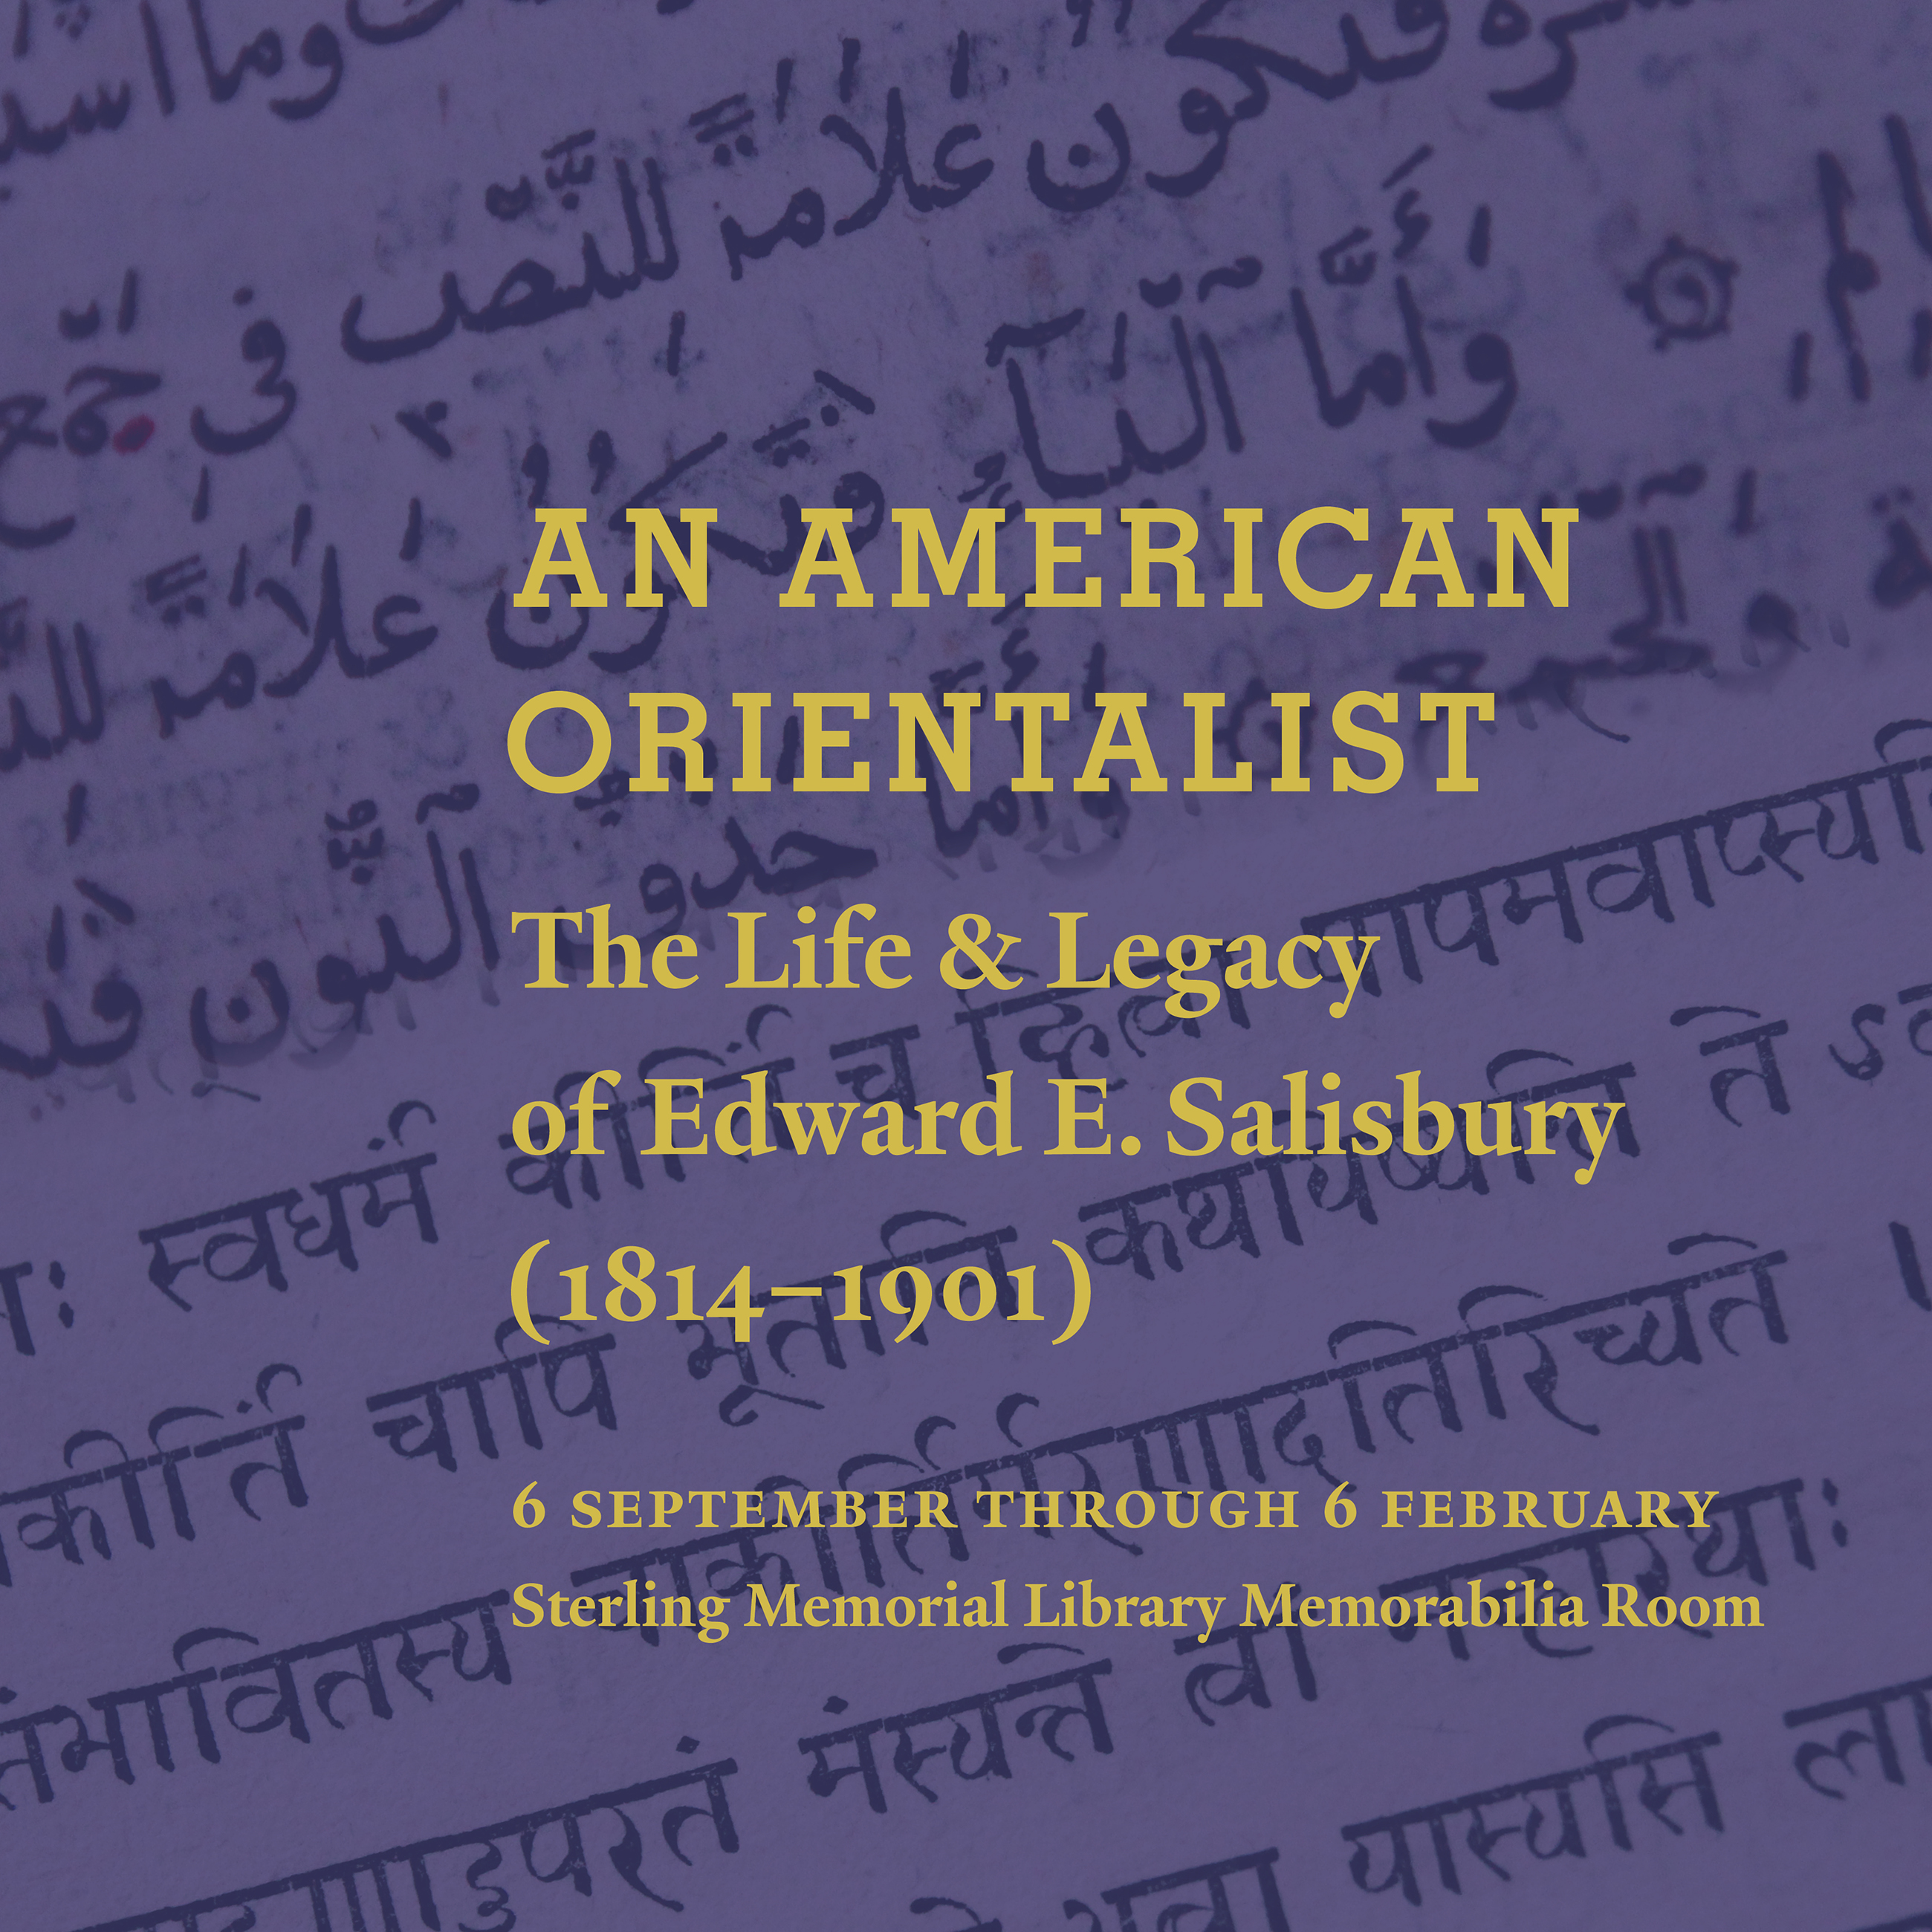 Am American Orientalist promotional image